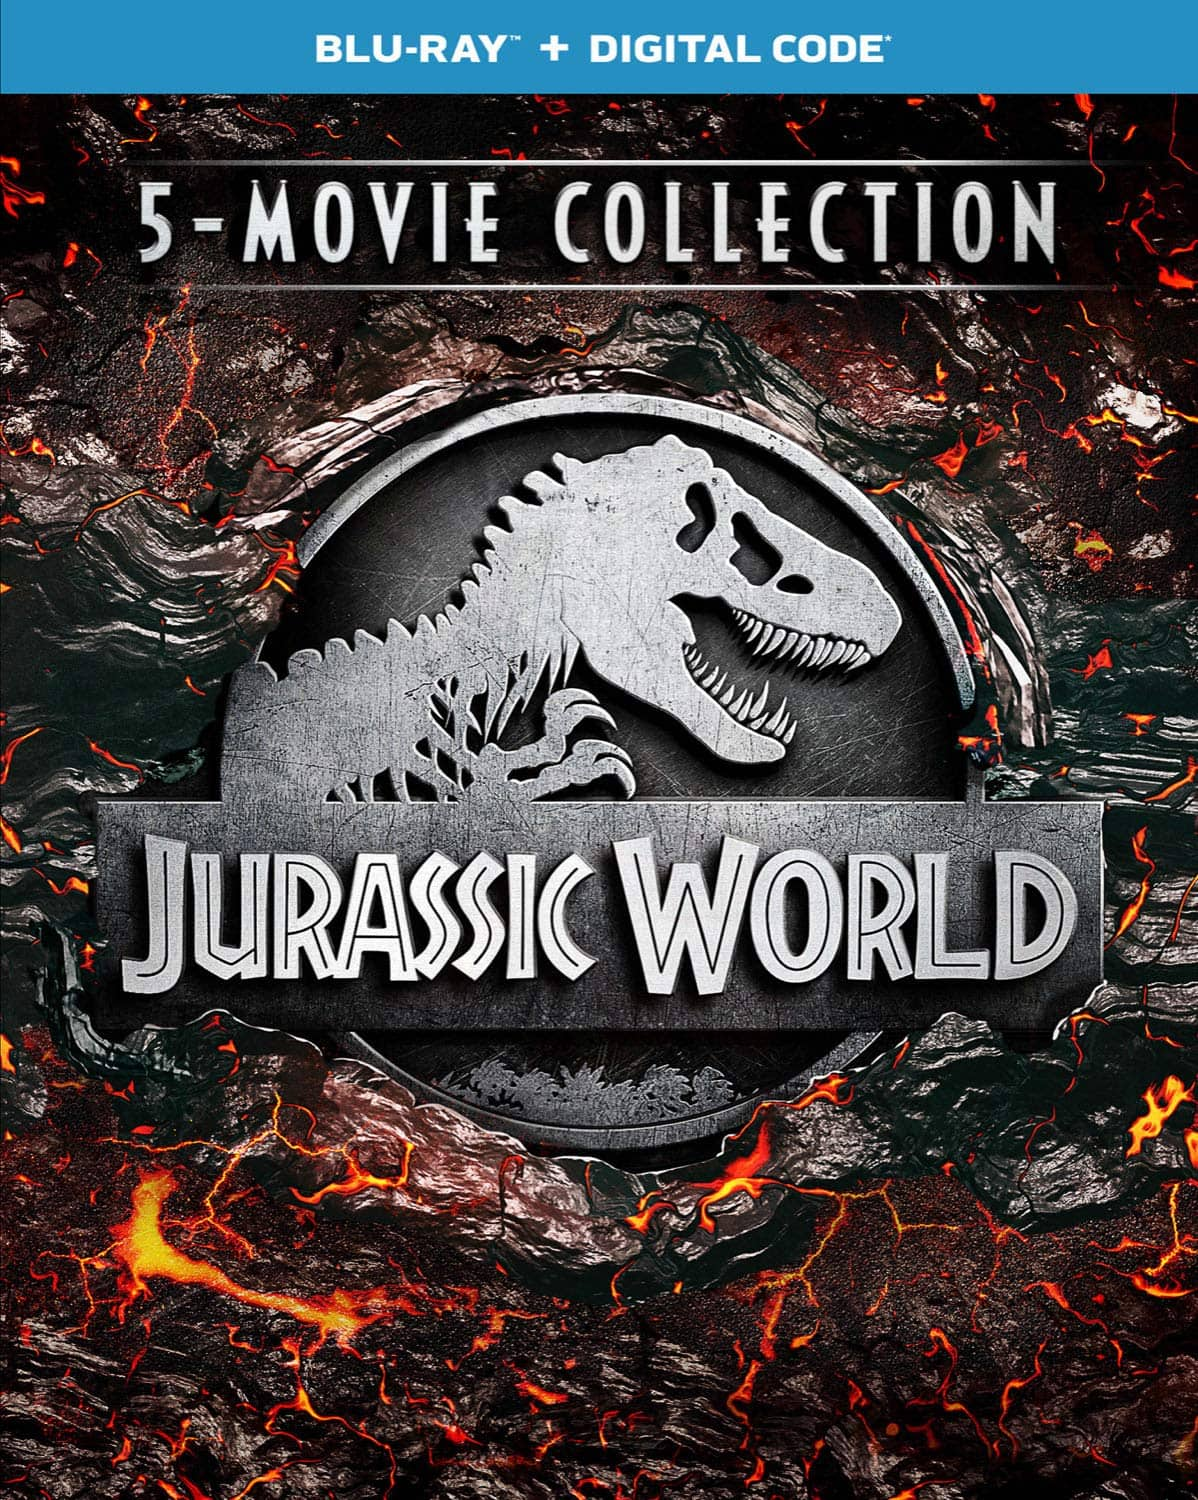 Jurassic World 5-Movie Collection [Blu-ray + Digital] $22.99